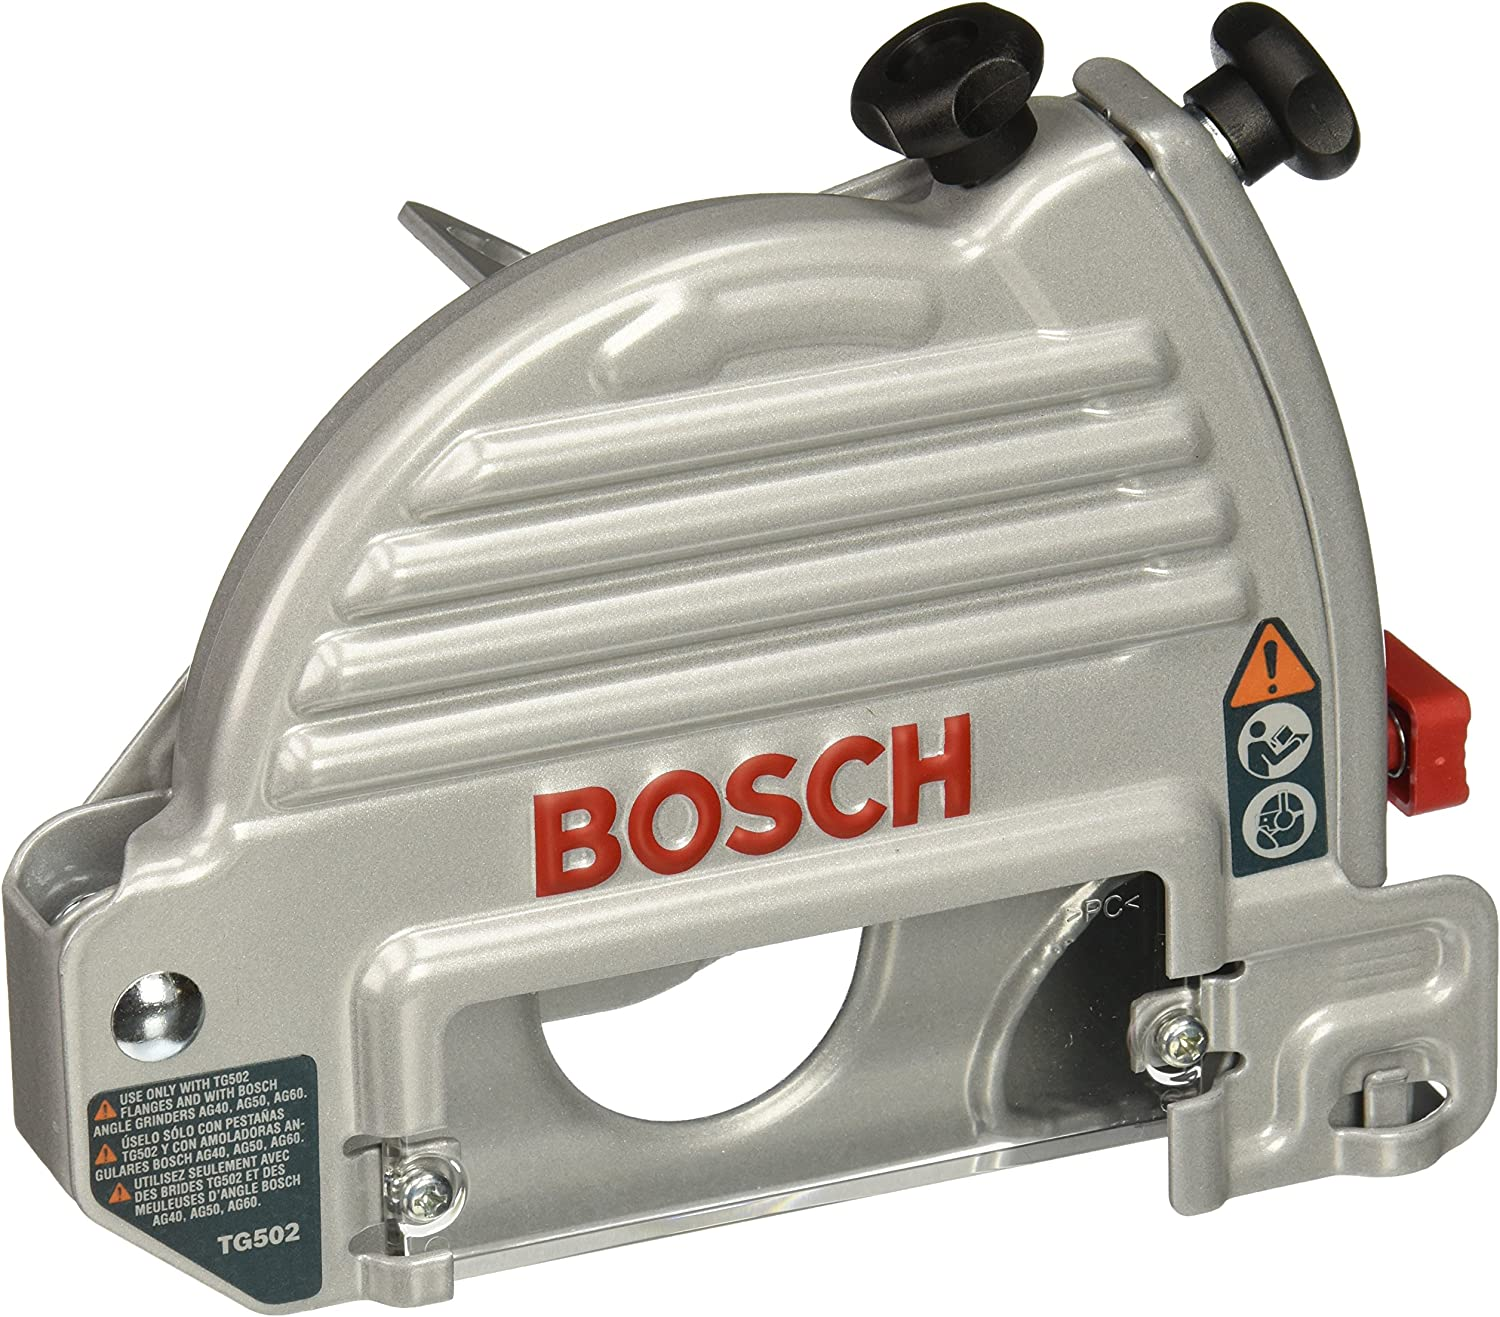 Bosch TG502 Tuck-Pointing Guard